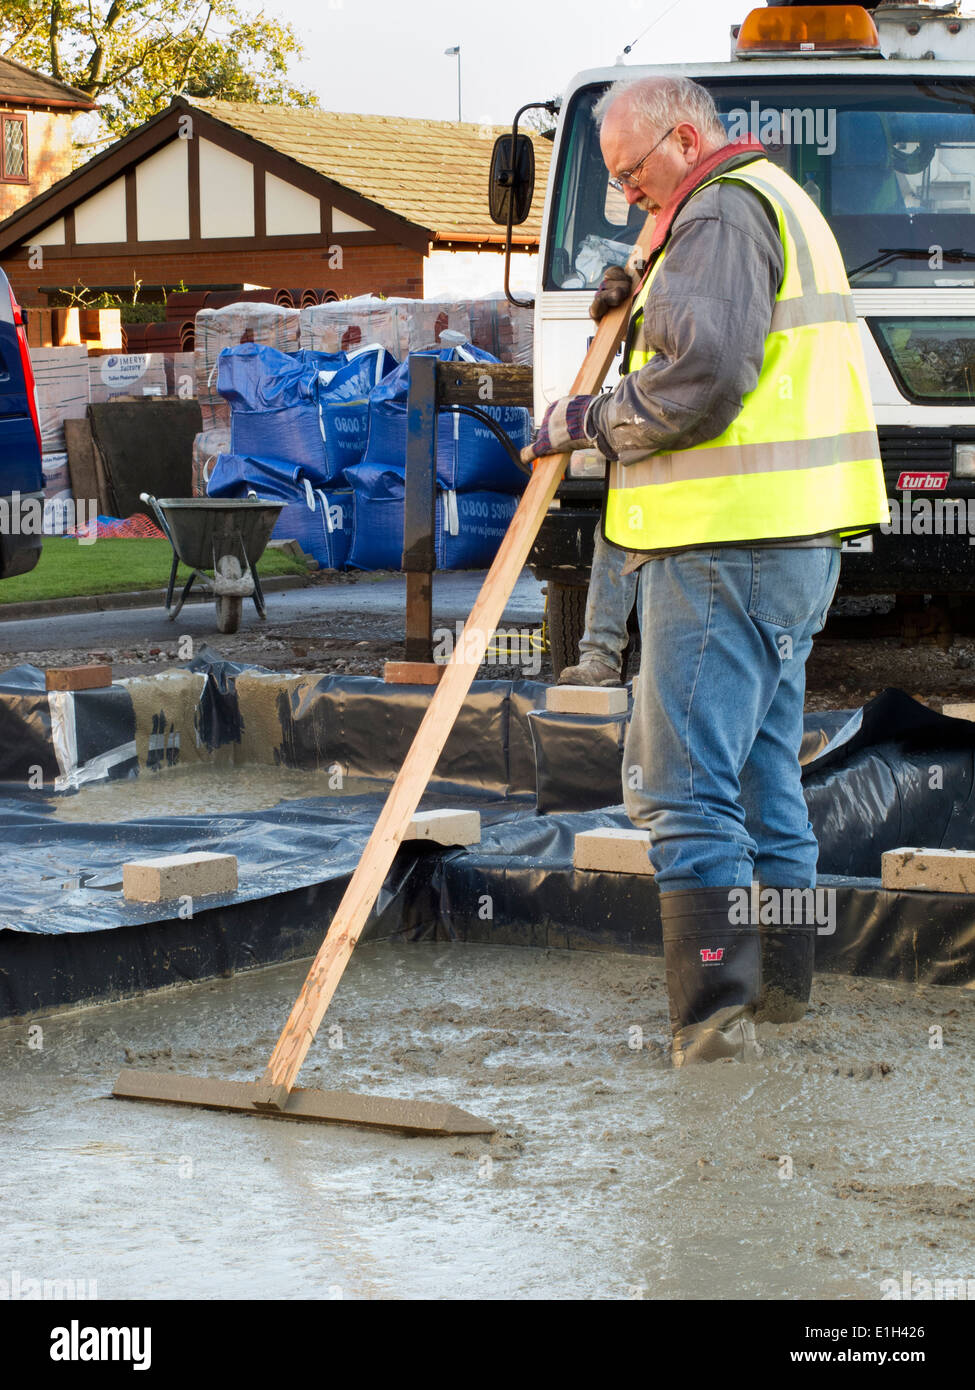 self building house, pouring floor slab, man roughly levelling concrete manually Stock Photo